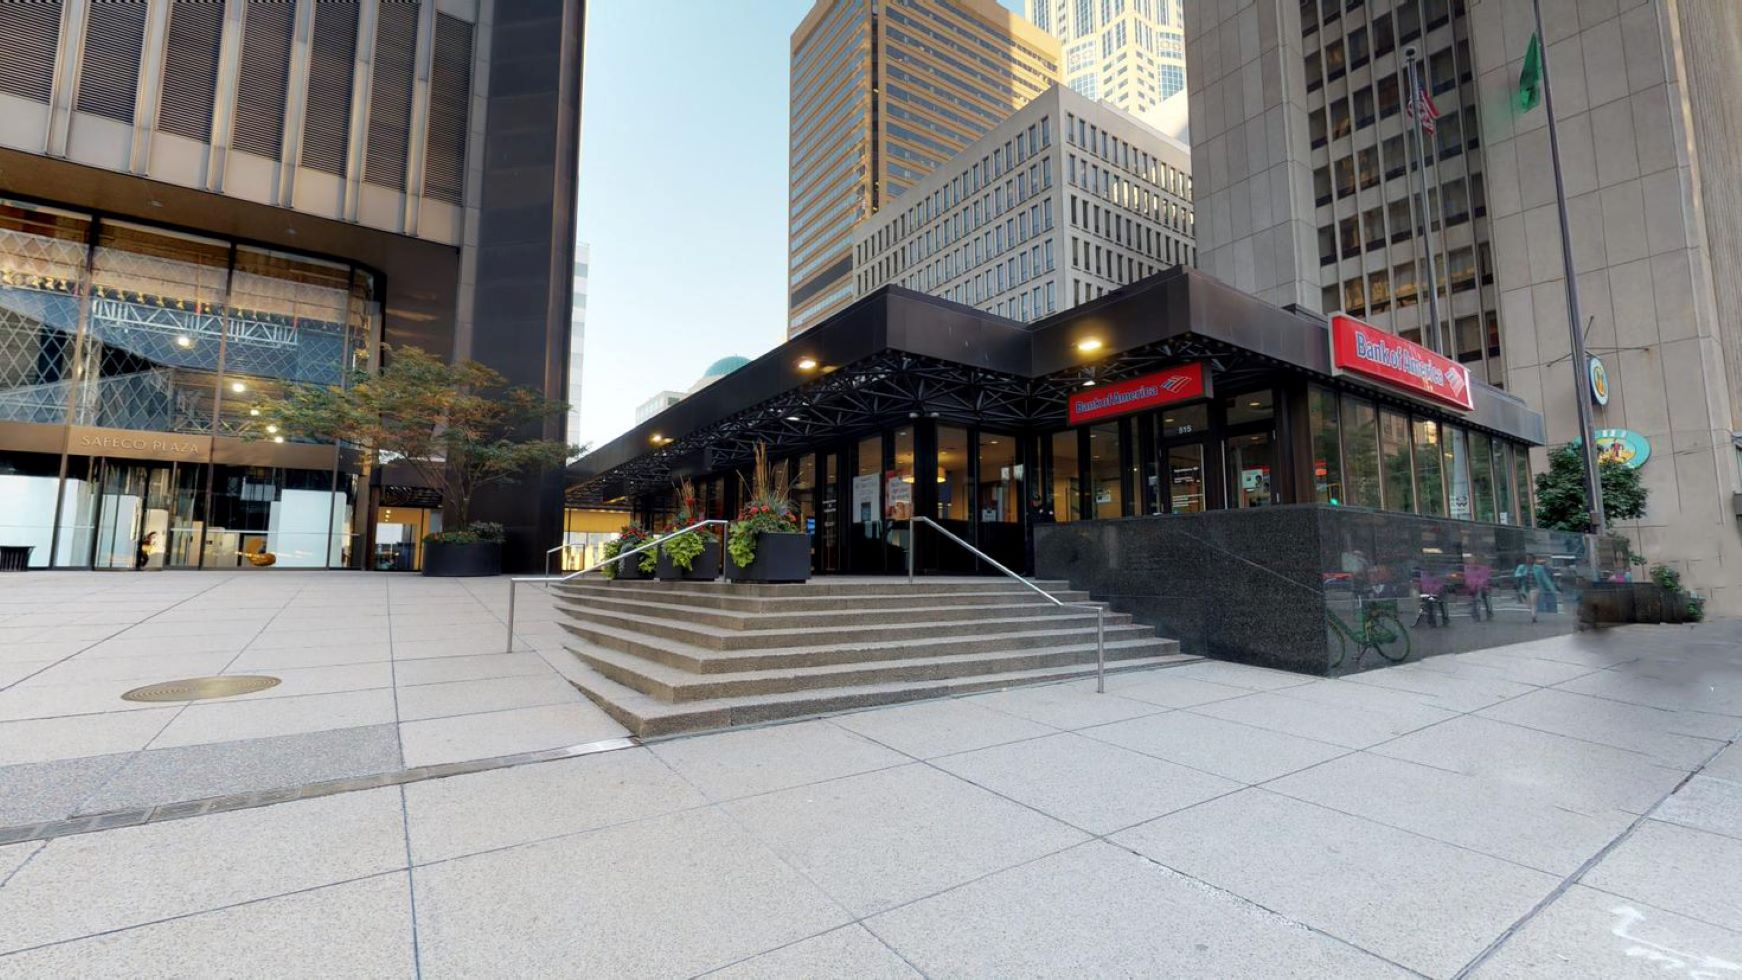 Bank of America financial center with walk-up ATM | 1001 4th Ave STE 515, Seattle, WA 98154